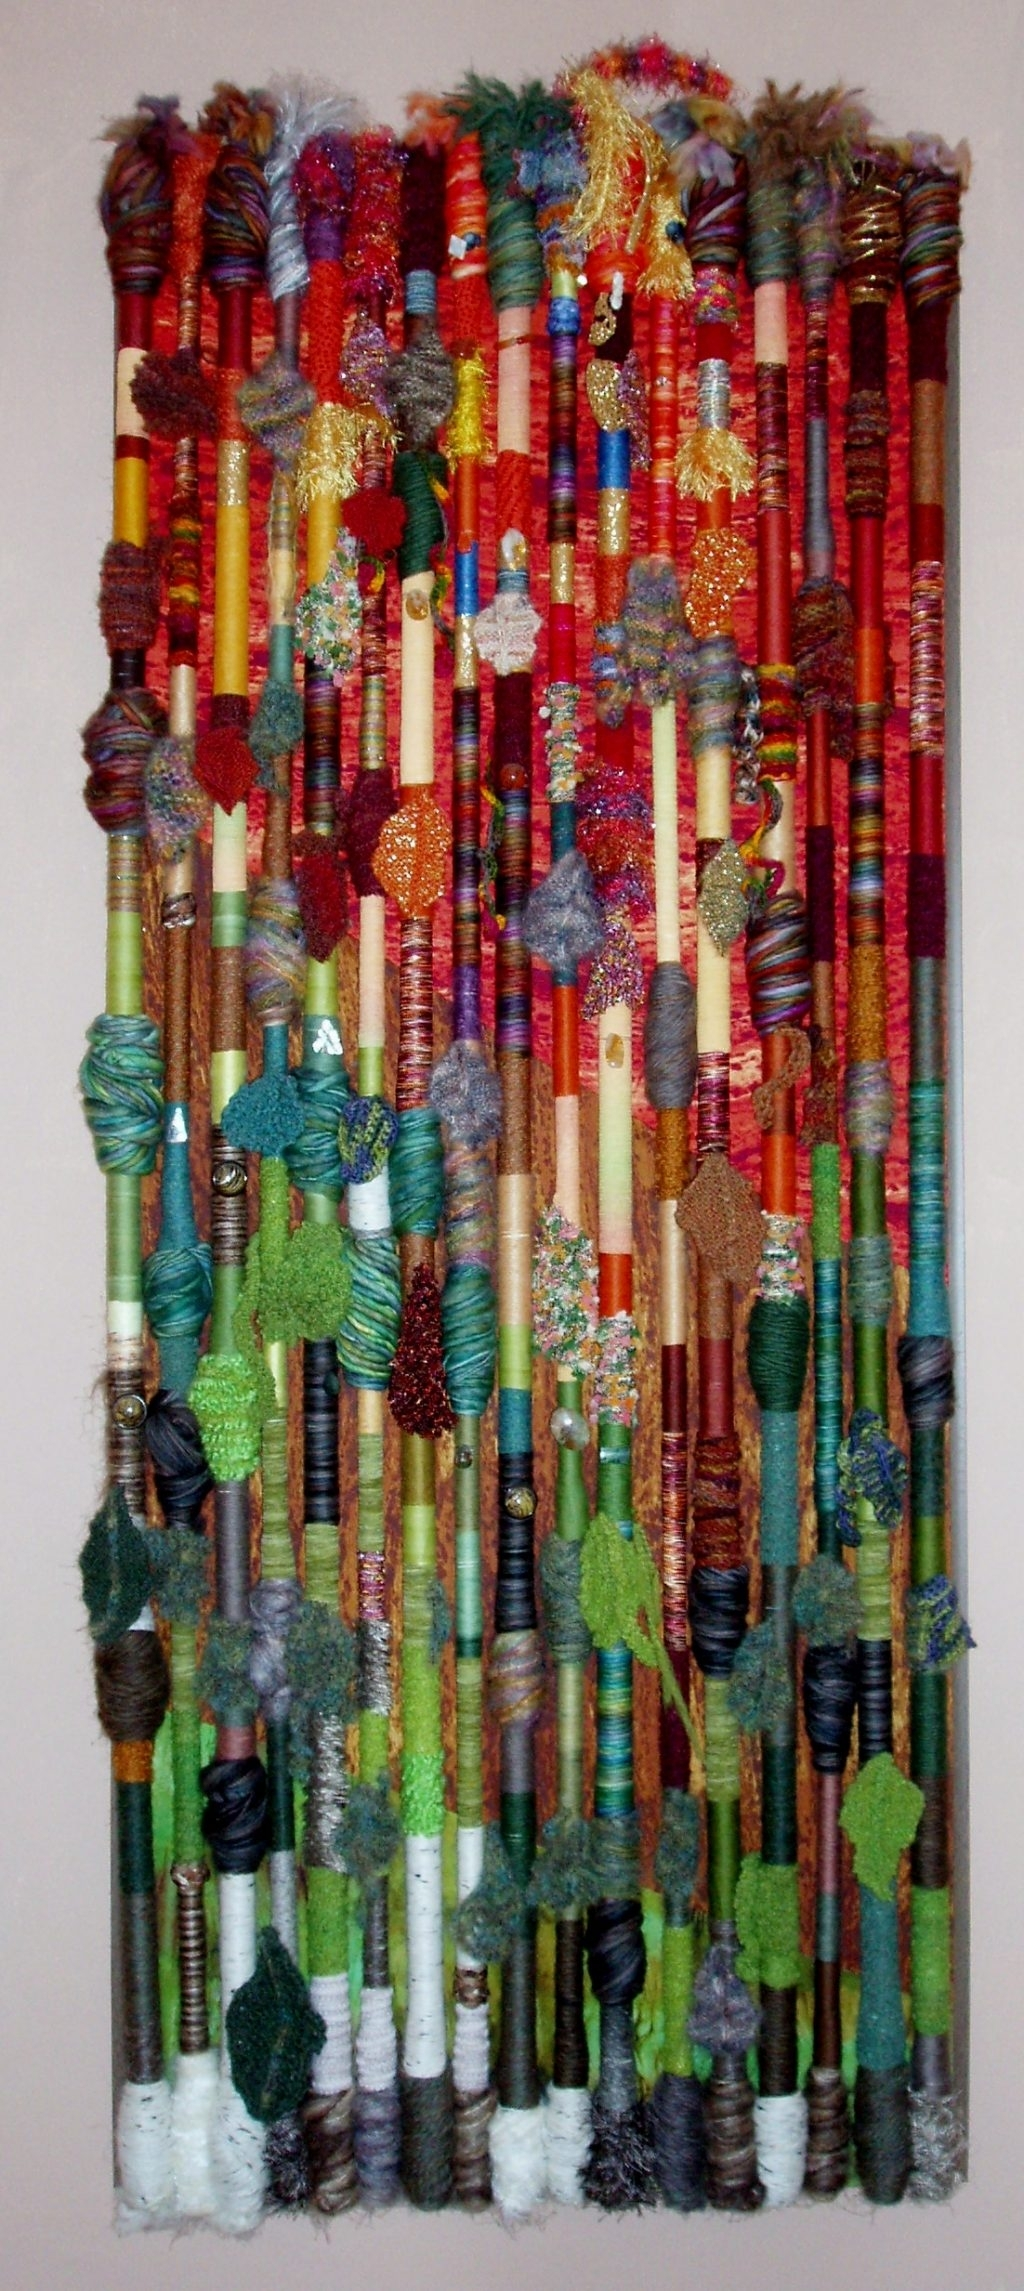 Inspirational Design Ideas Textile Wall Hangings With Fiber Art With Regard To Recent Hanging Textile Wall Art (View 2 of 15)